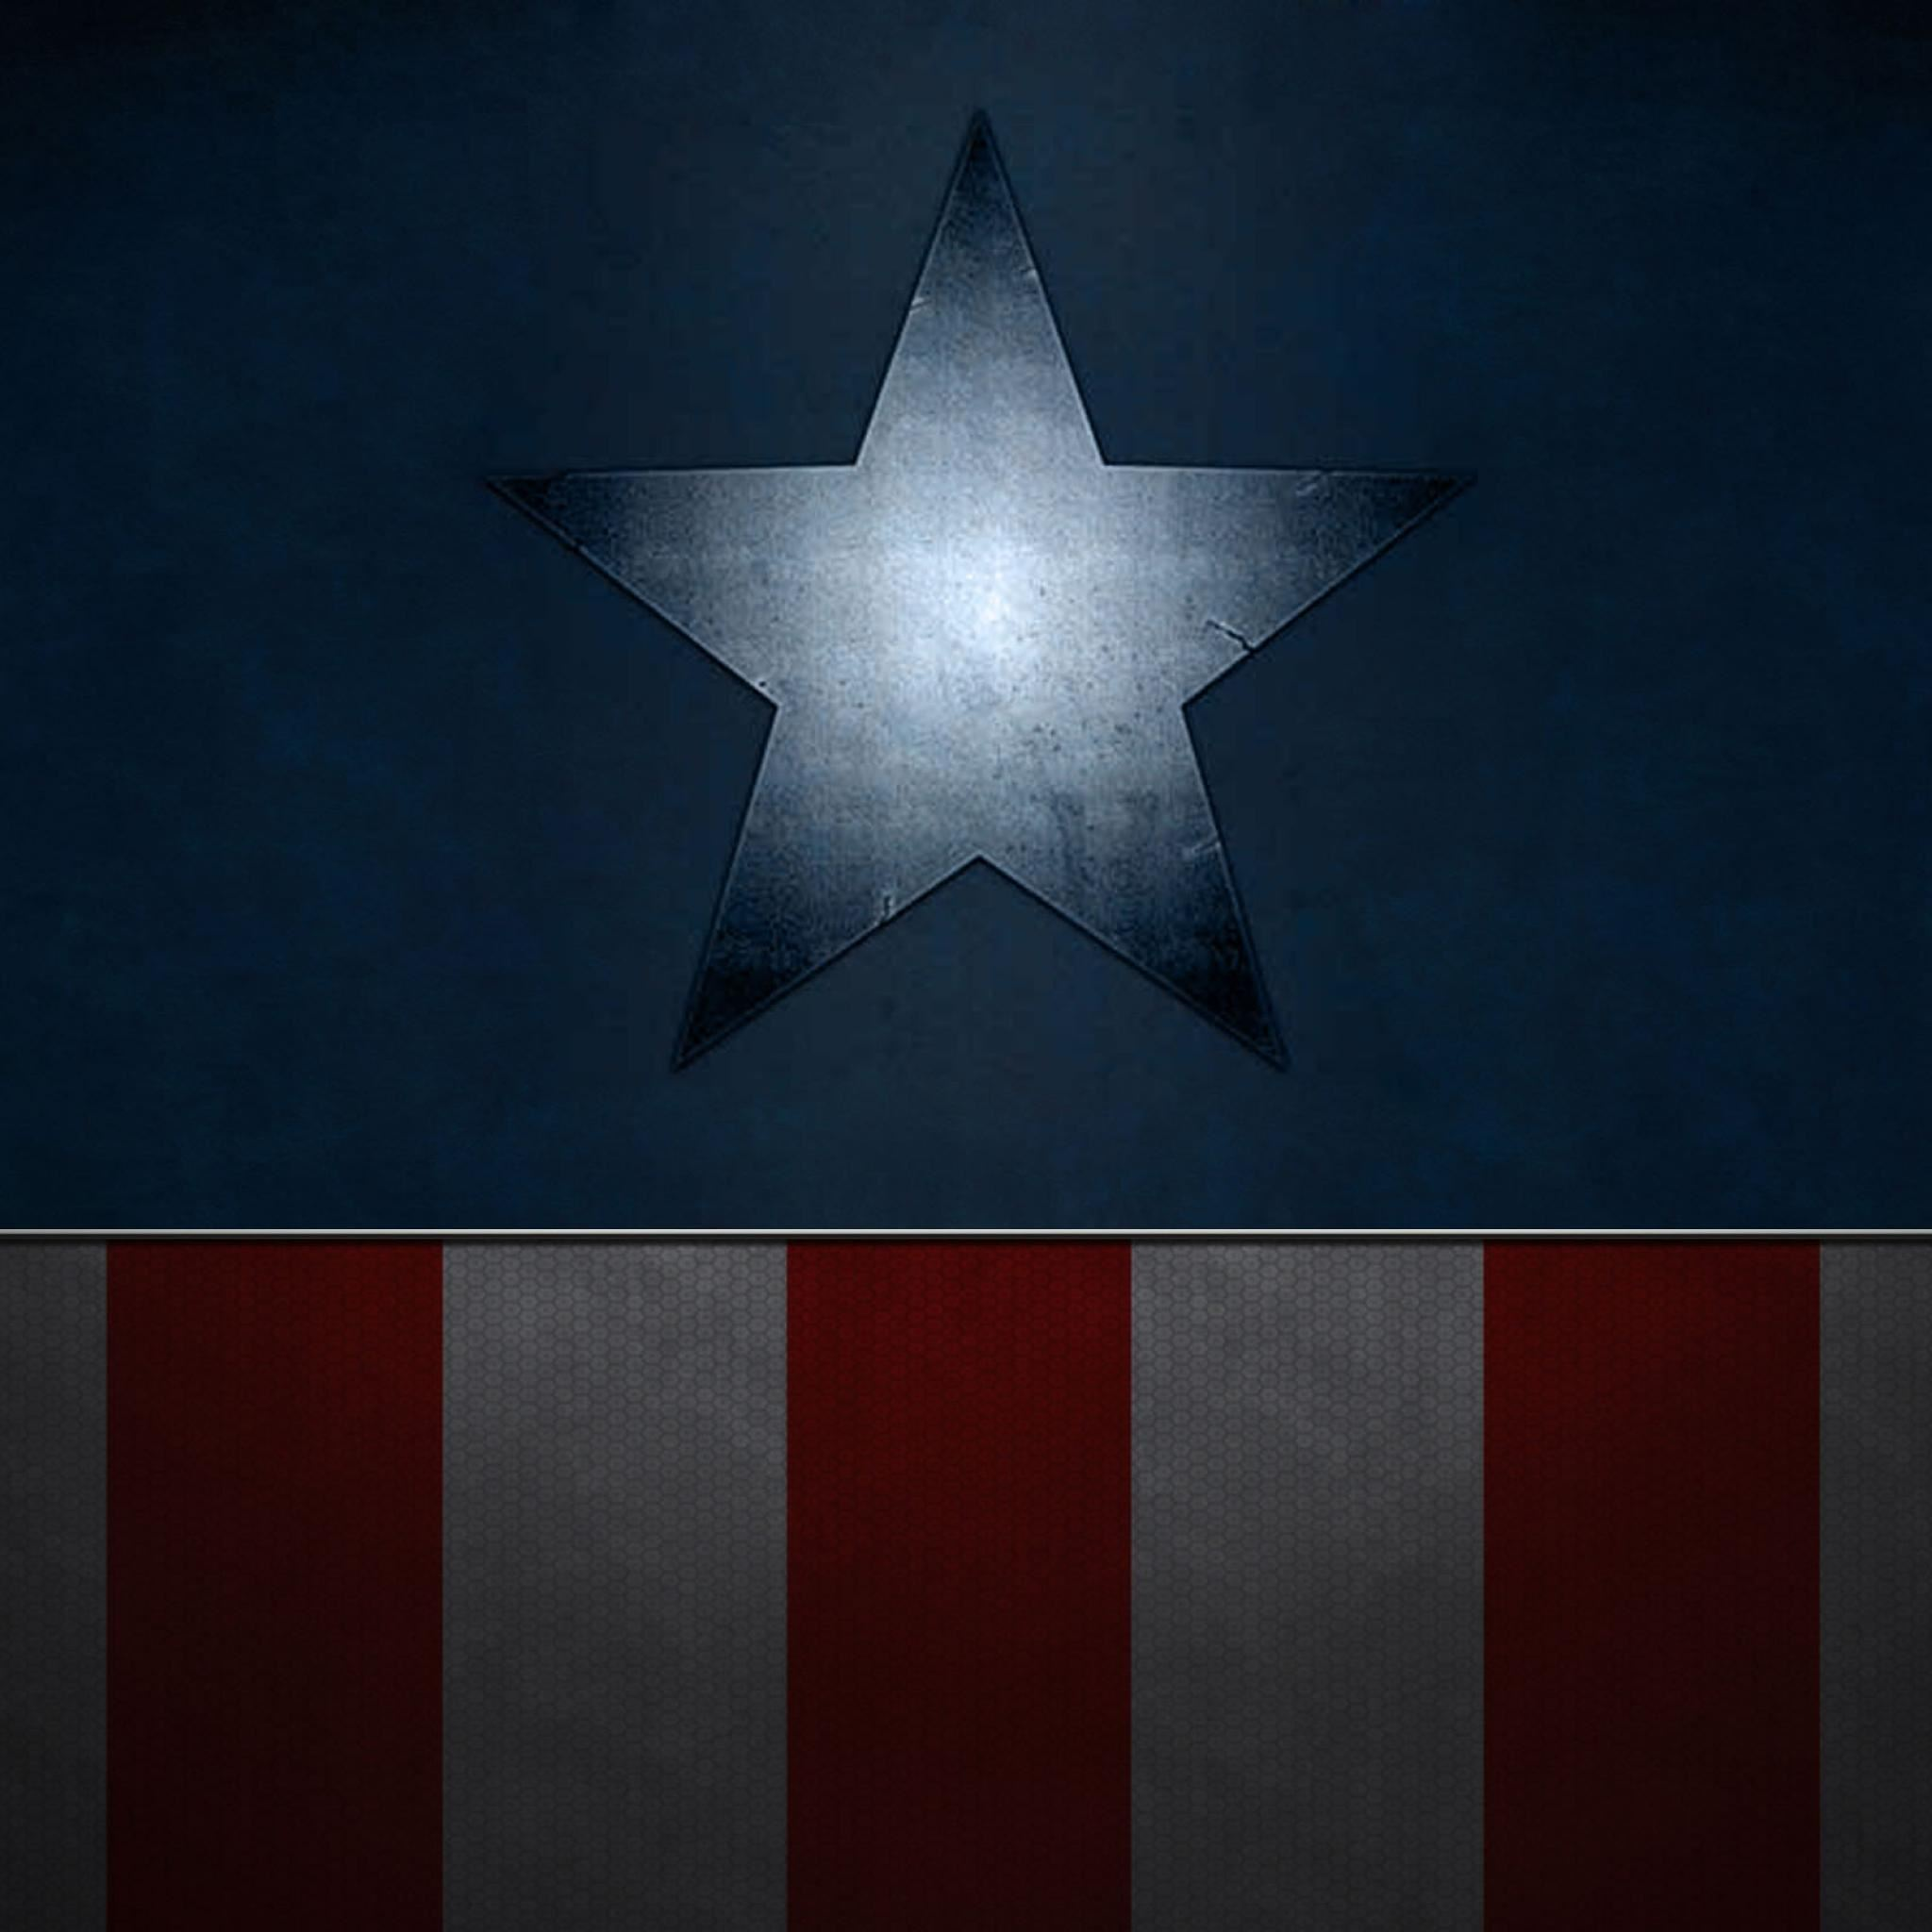 Captain America Abstract Texture iPad Air wallpaper